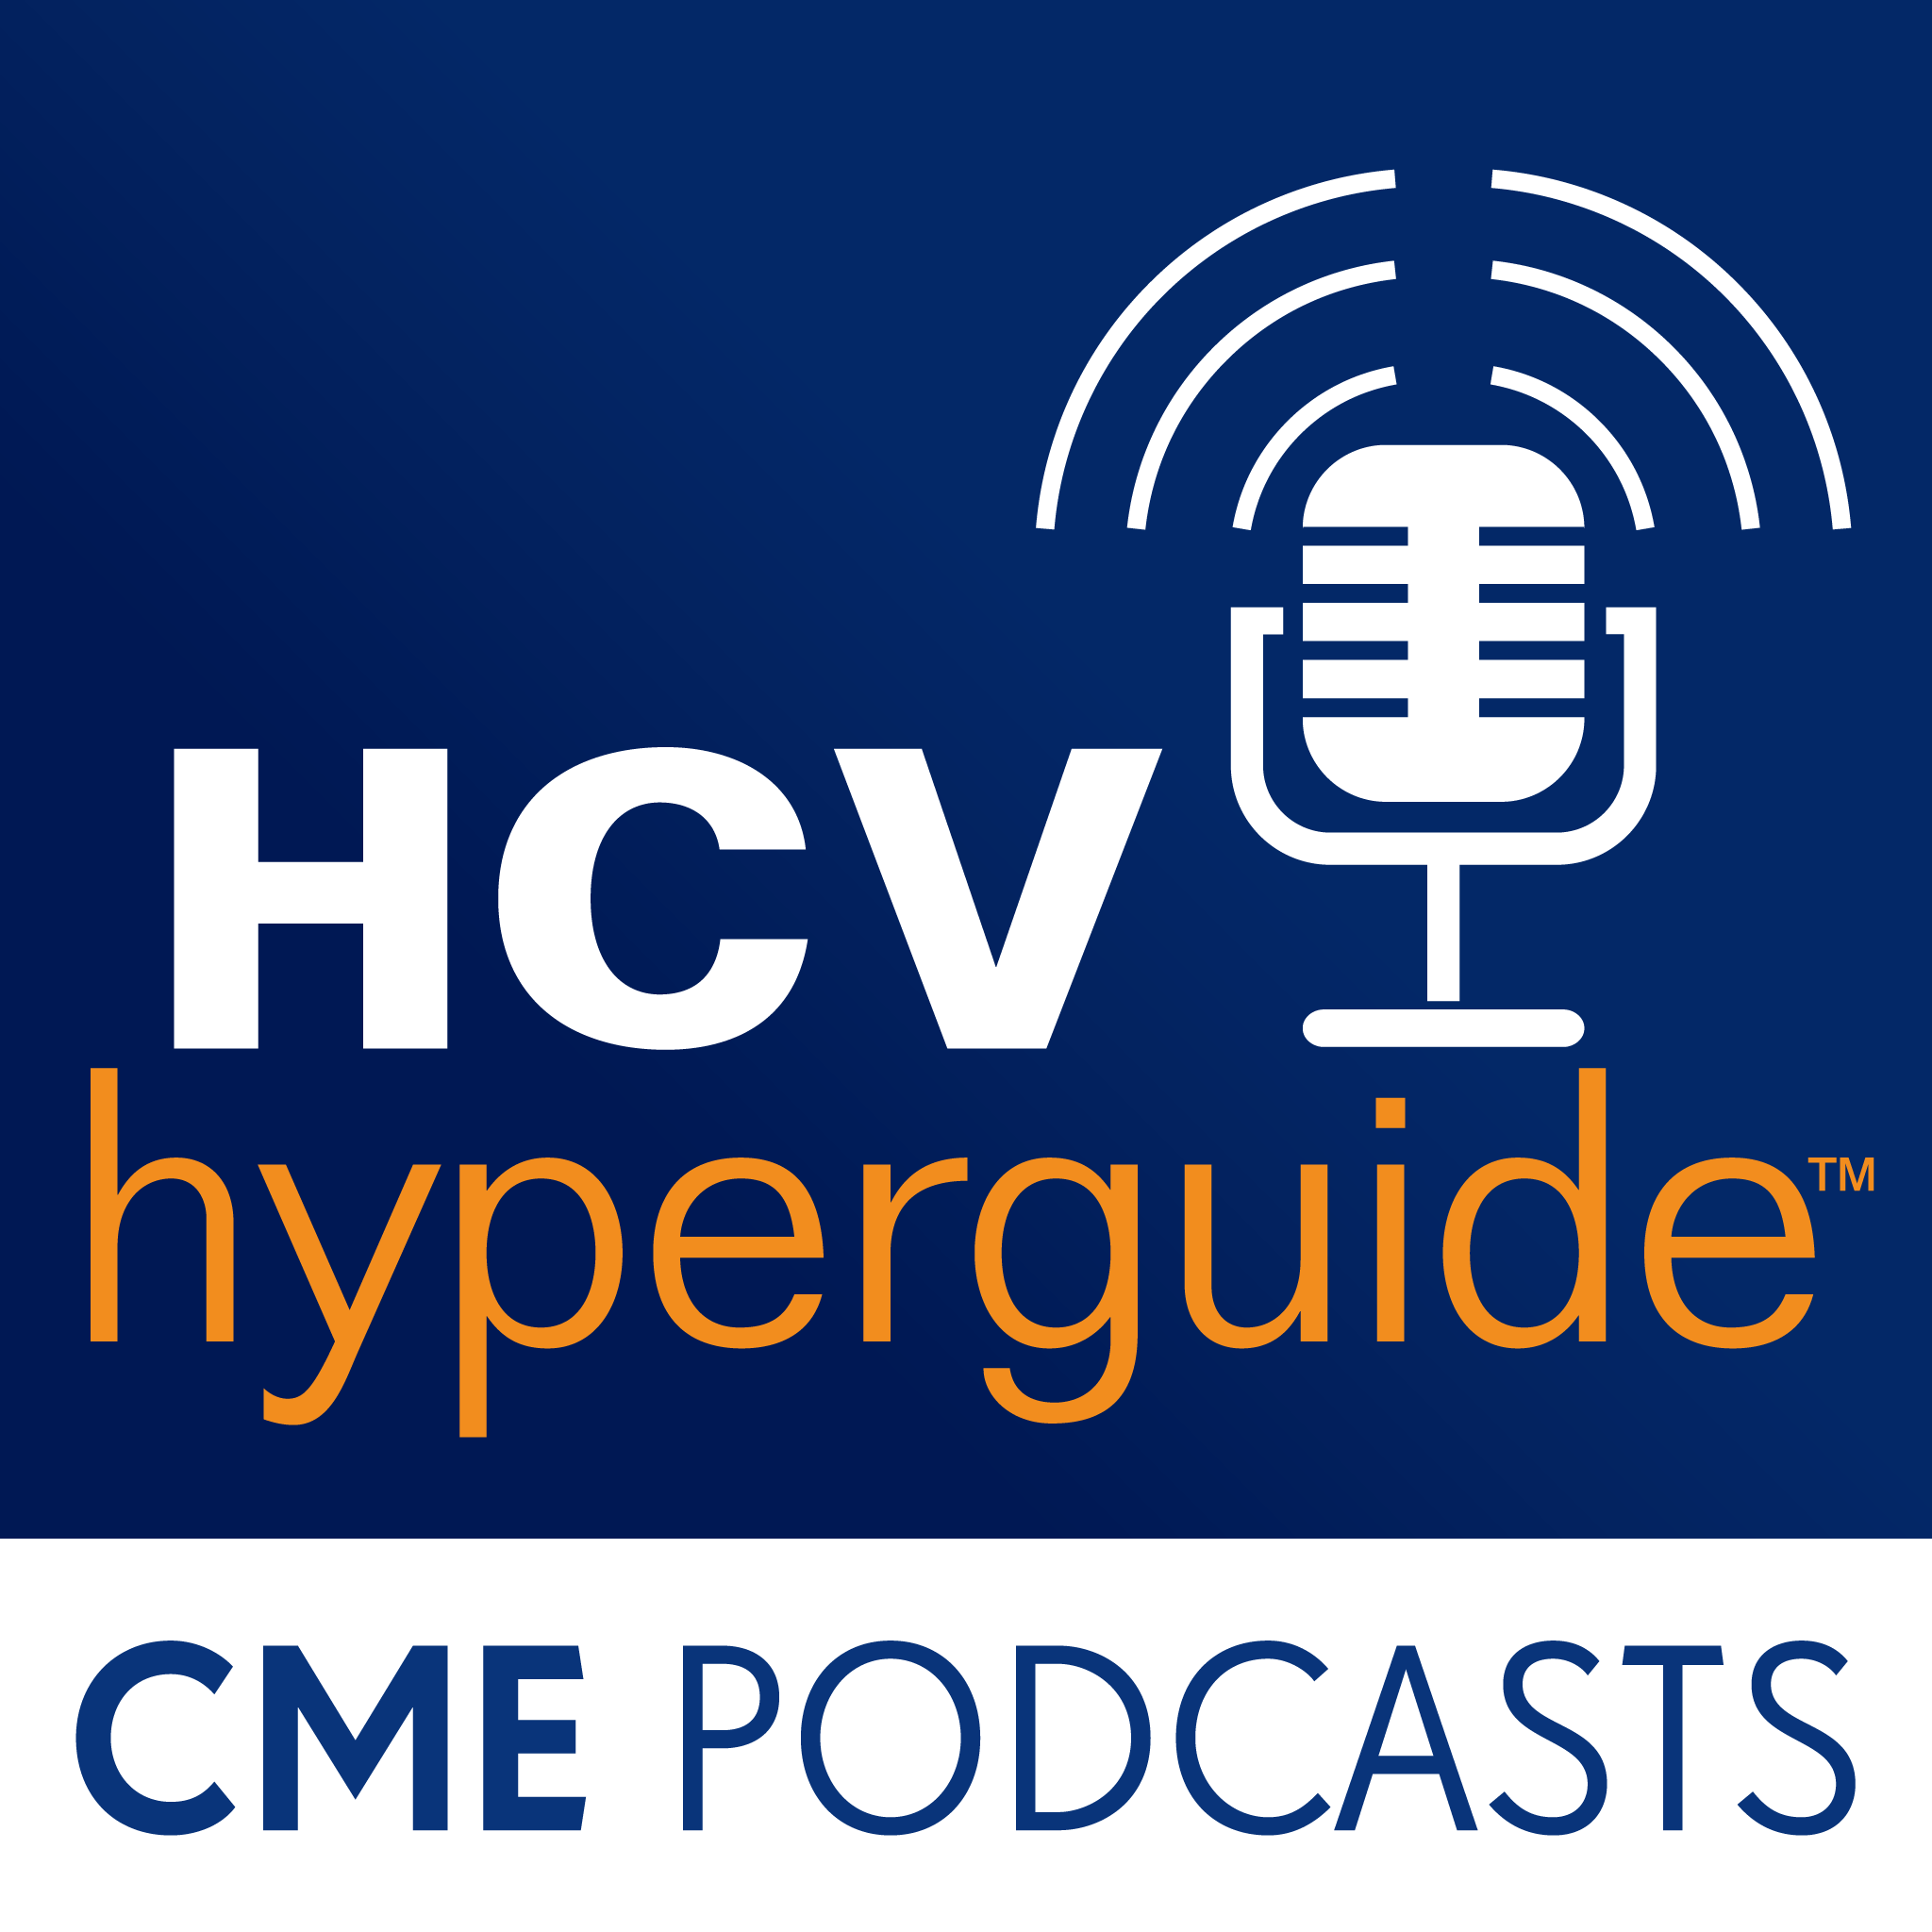 HCV Hyperguide Podcast Channel